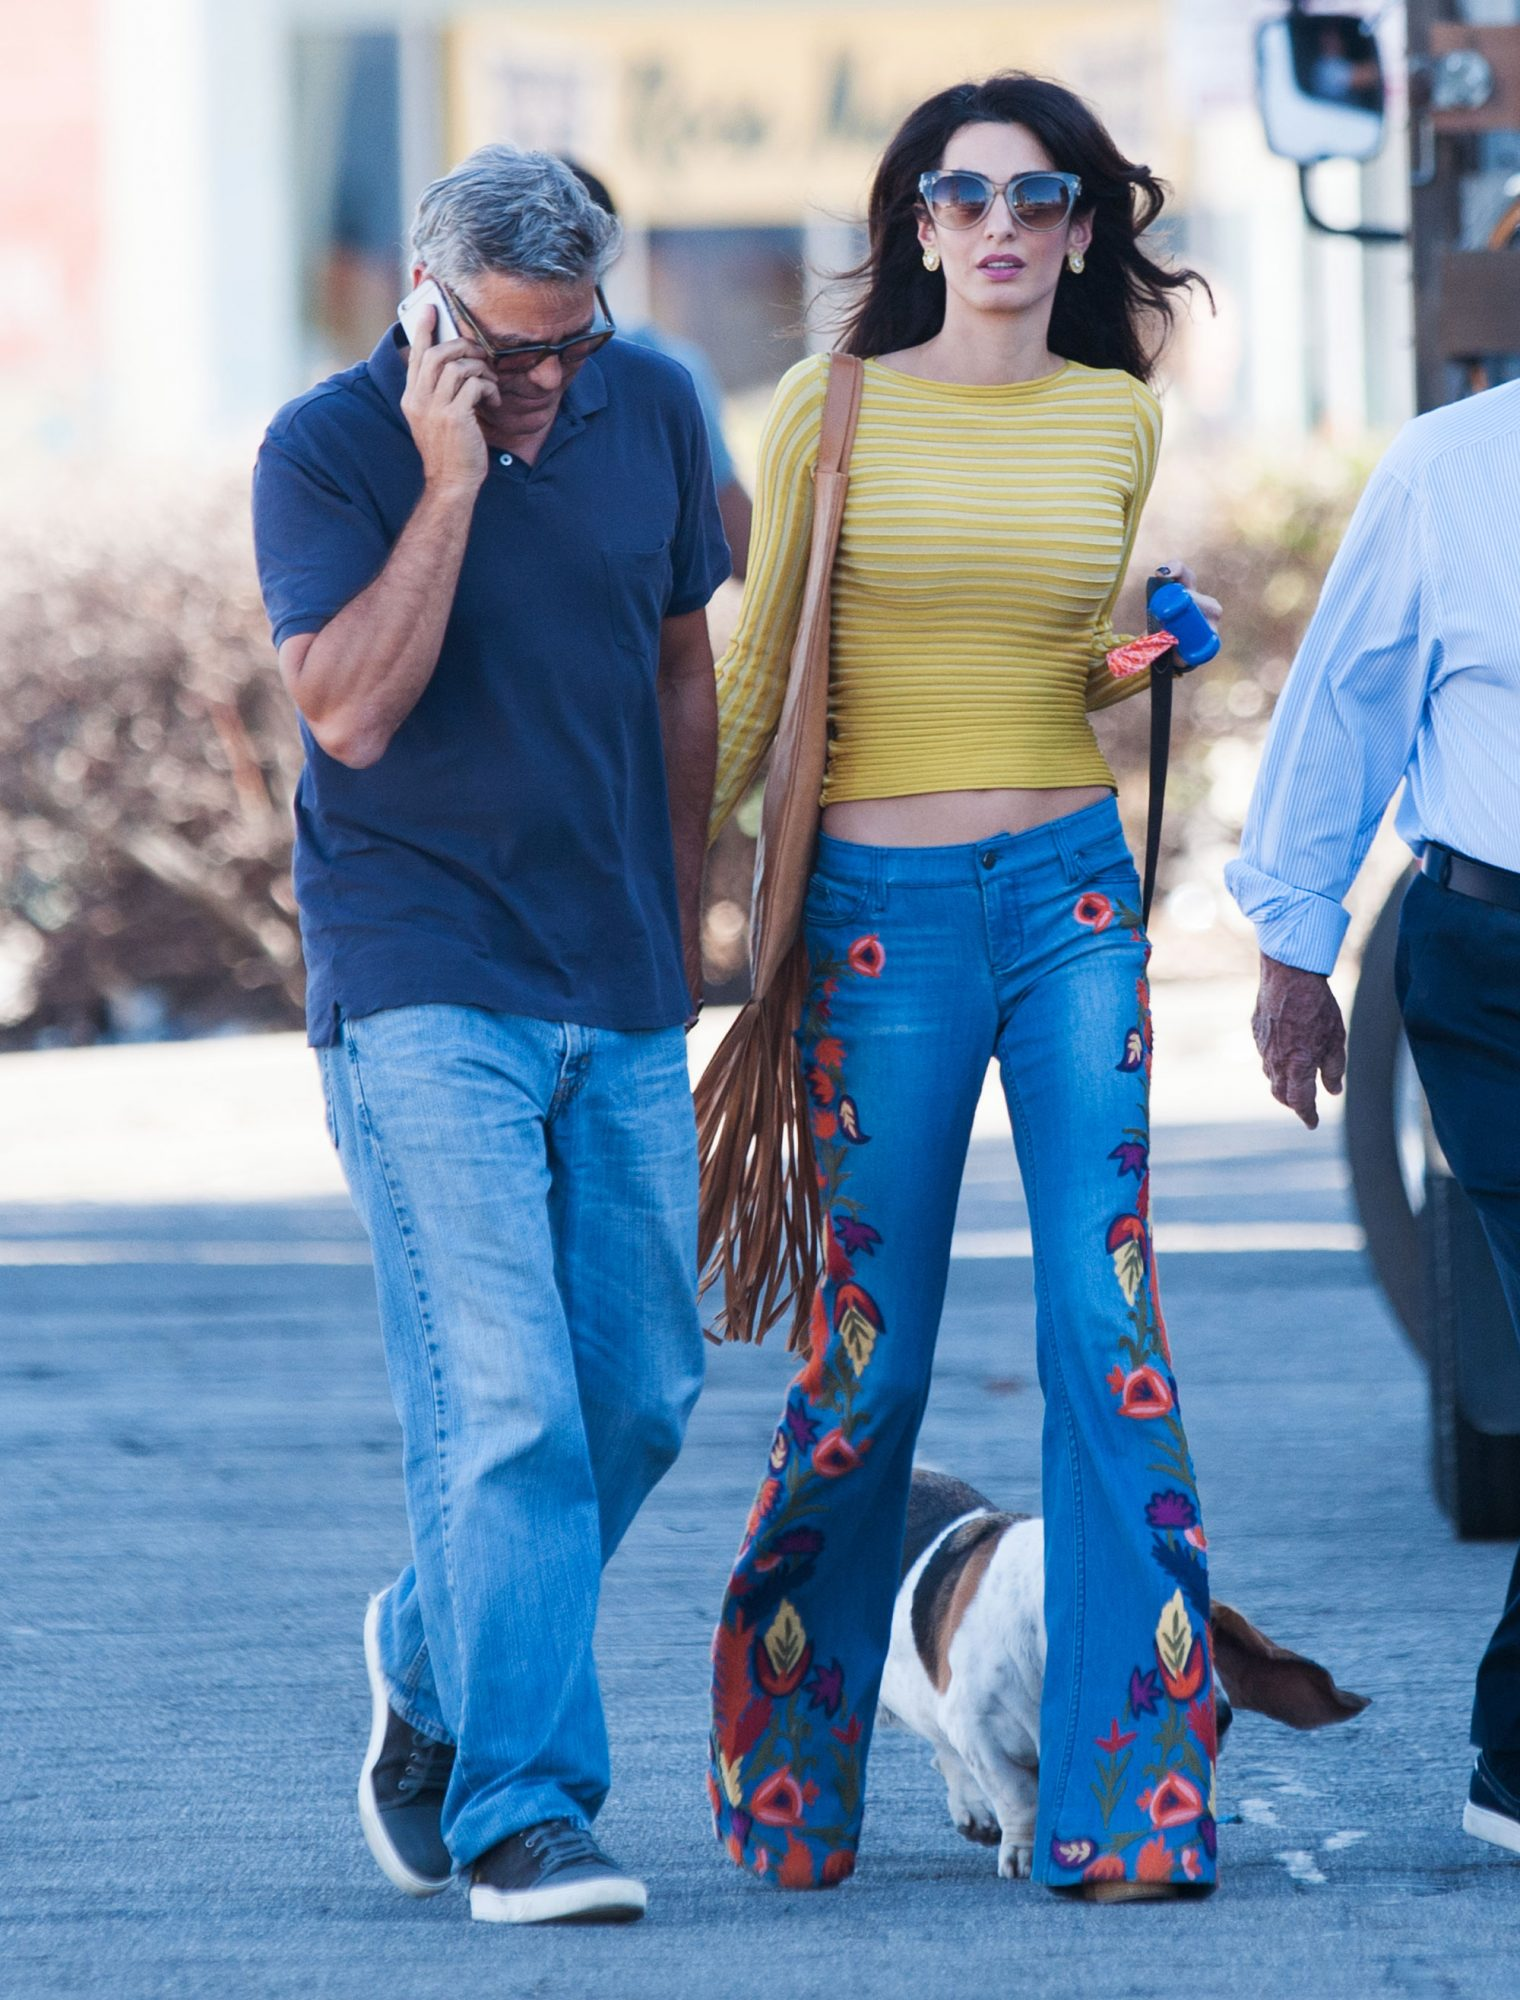 Amal Clooney Visits George on the set of Suburbicon in Los Angeles.